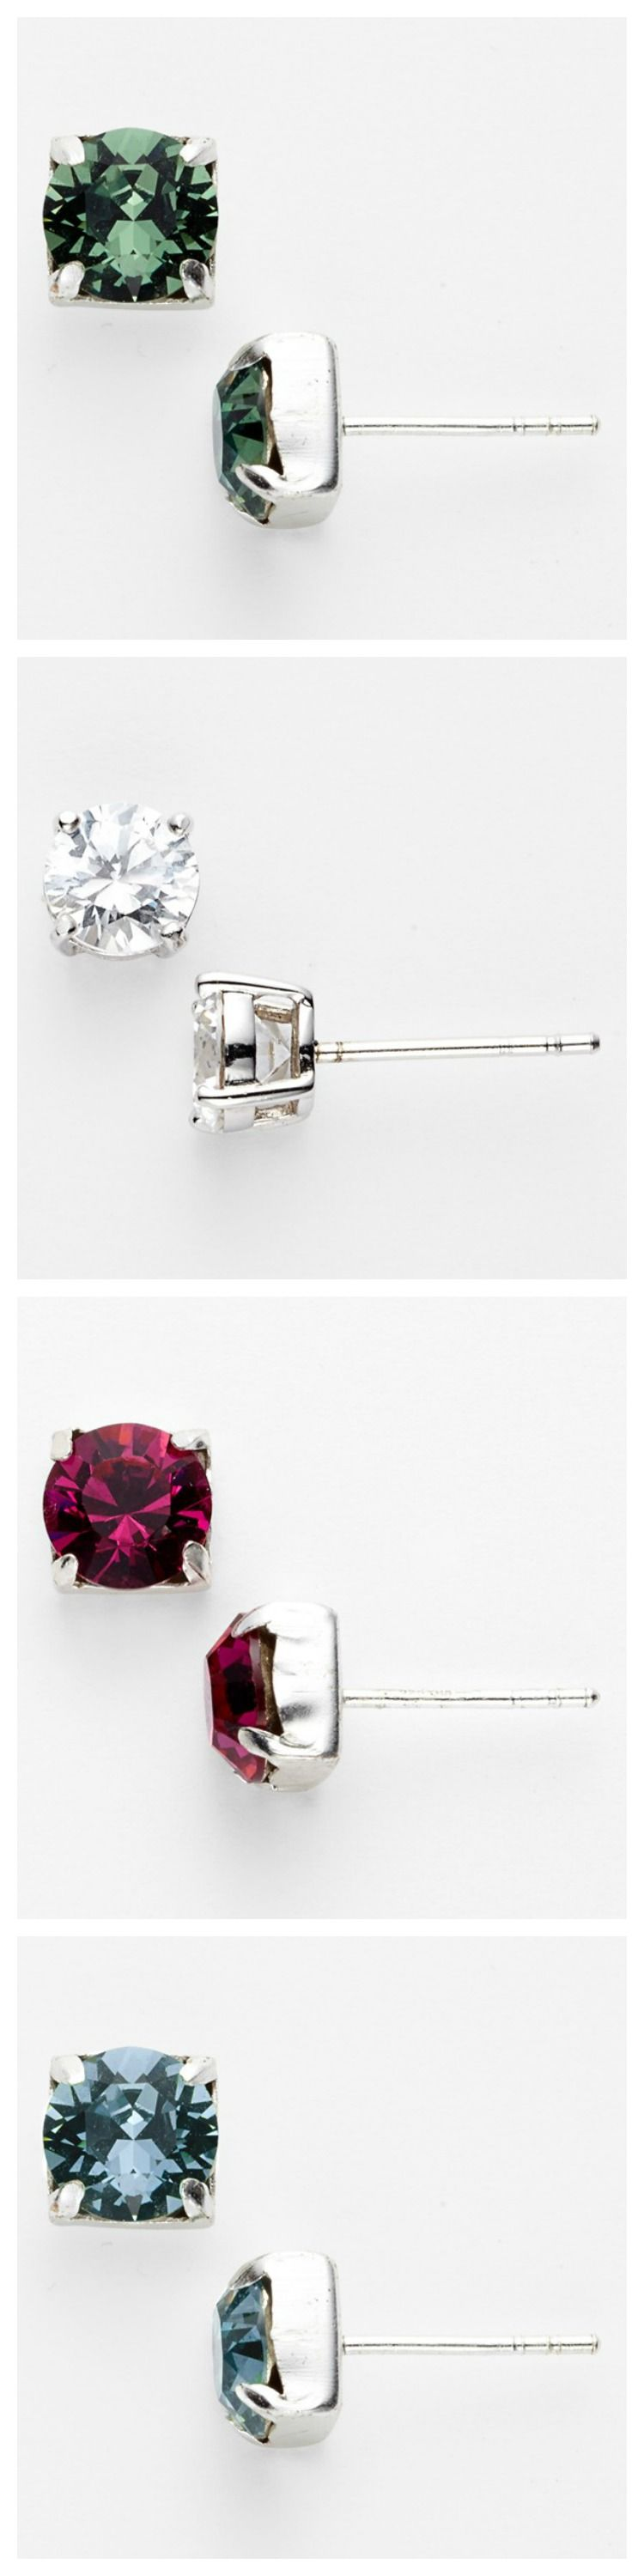 sparkly earrings stud want need pin love these pinterest